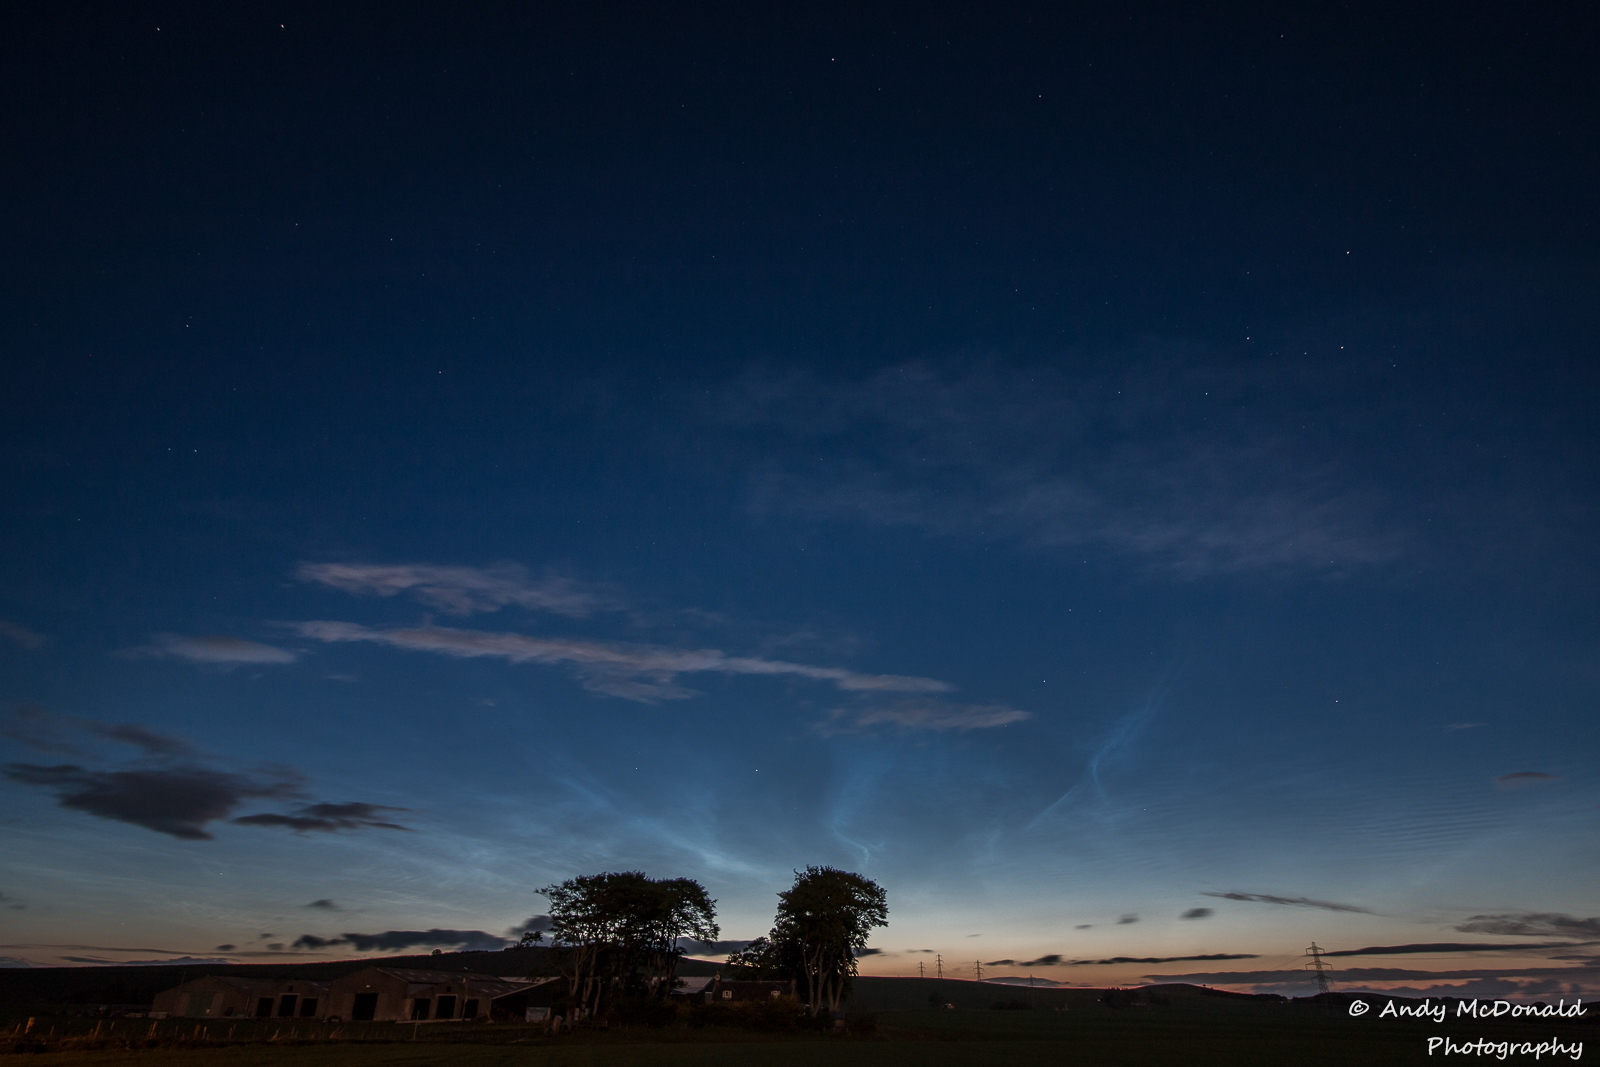 201506-2-3-0112hrs-nlc-clouds.jpg